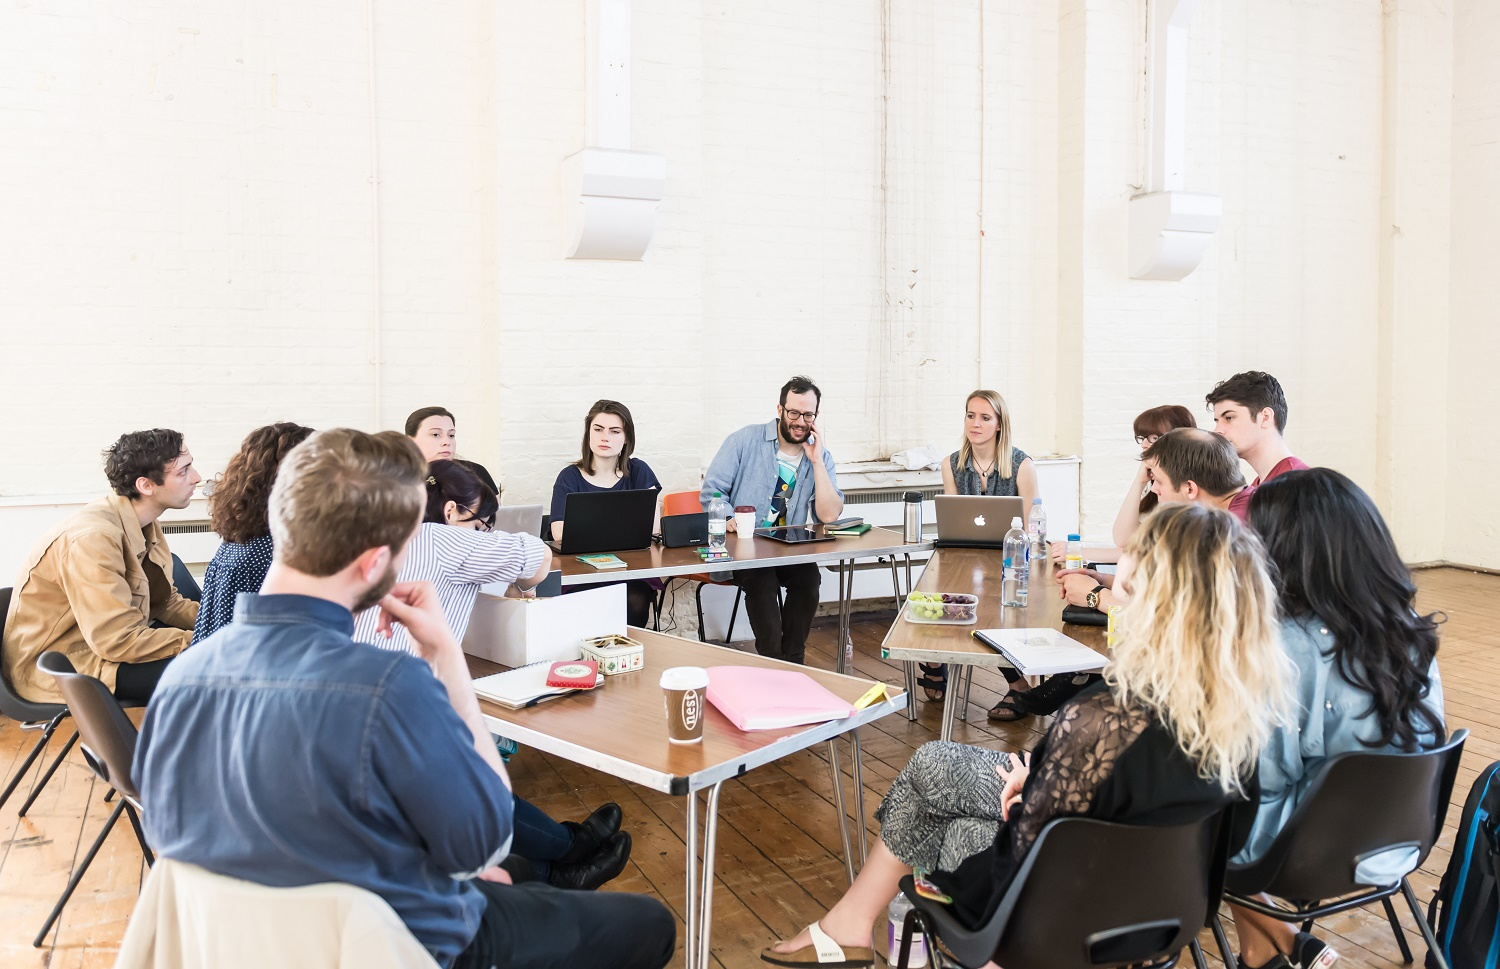 Today the cast and creative team I employed gathered together to read through the script of 'The Quentin Dentin Show' for the upcoming production at the Tristan Bates Theatre. My job at the read-through is to ensure that the whole team are on the same page about what the show is, and what it needs to achieve – to create a cohesive production. (Photo by Lidia Crisafulli.)